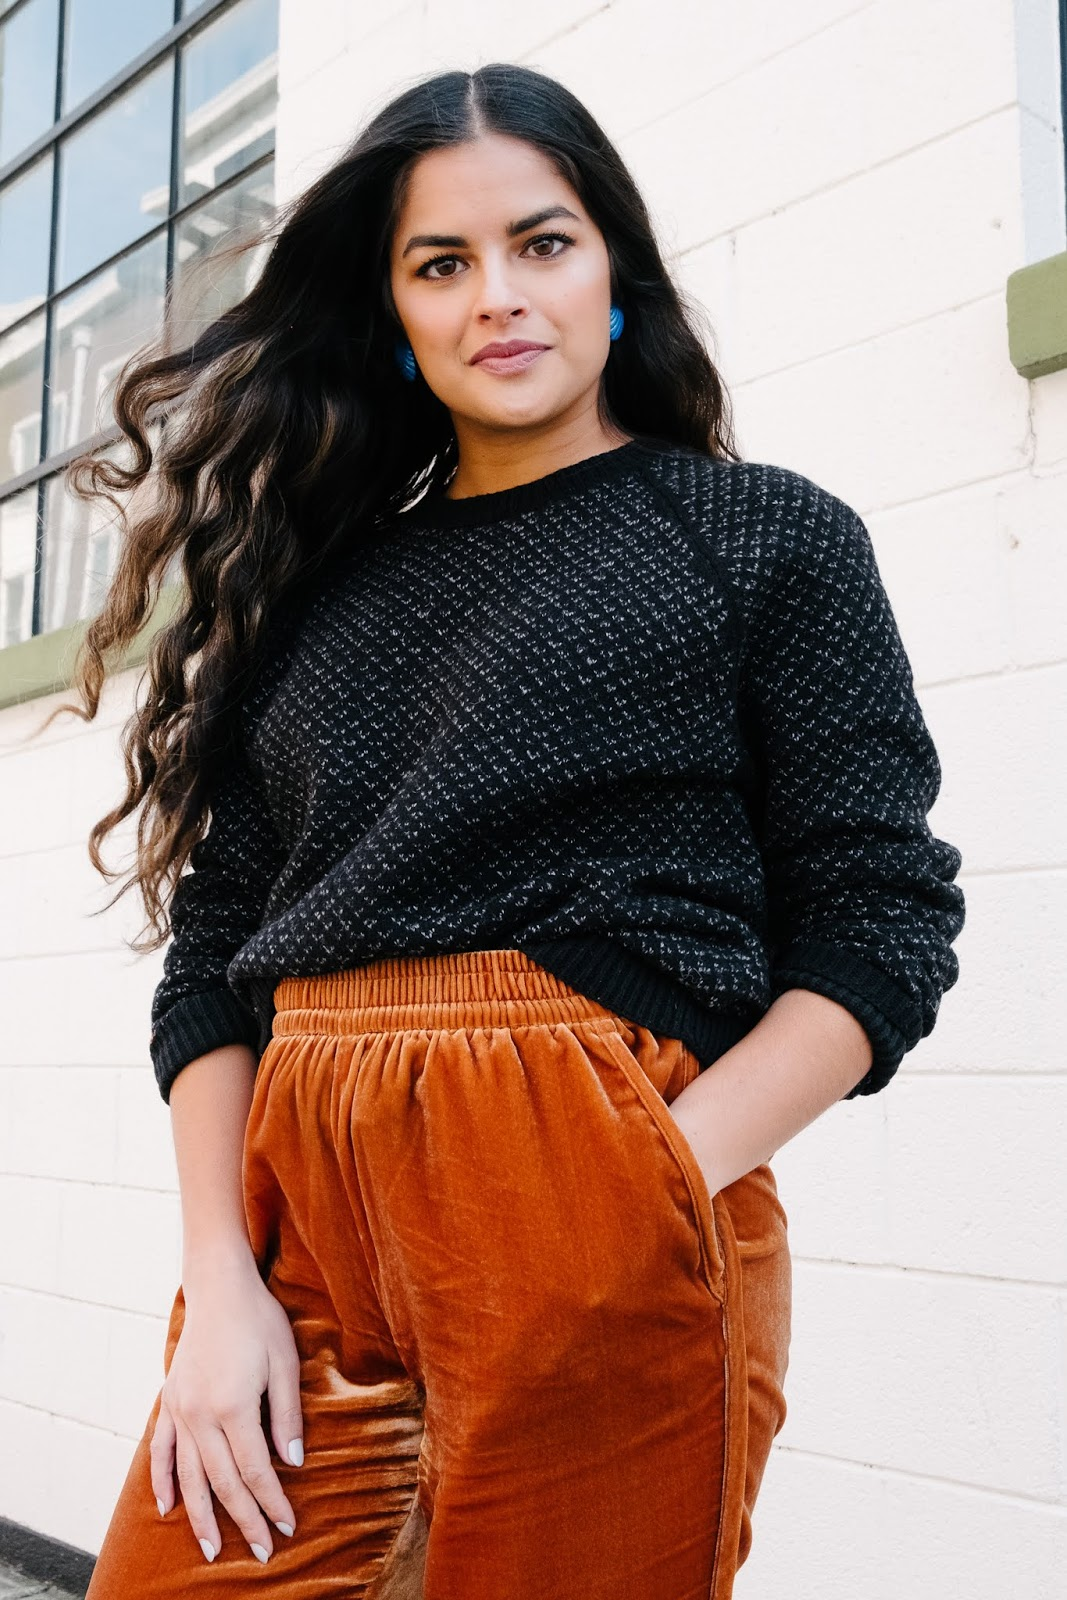 Priya the Blog, Nashville style blog, Nashville style blogger, Nashville fashion blog, Nashville fashion blogger, Madewell velvet joggers, how to wear velvet joggers, velvet joggers, Winter fashion, Winter wear to work outfit, Marimekko Target loafers,